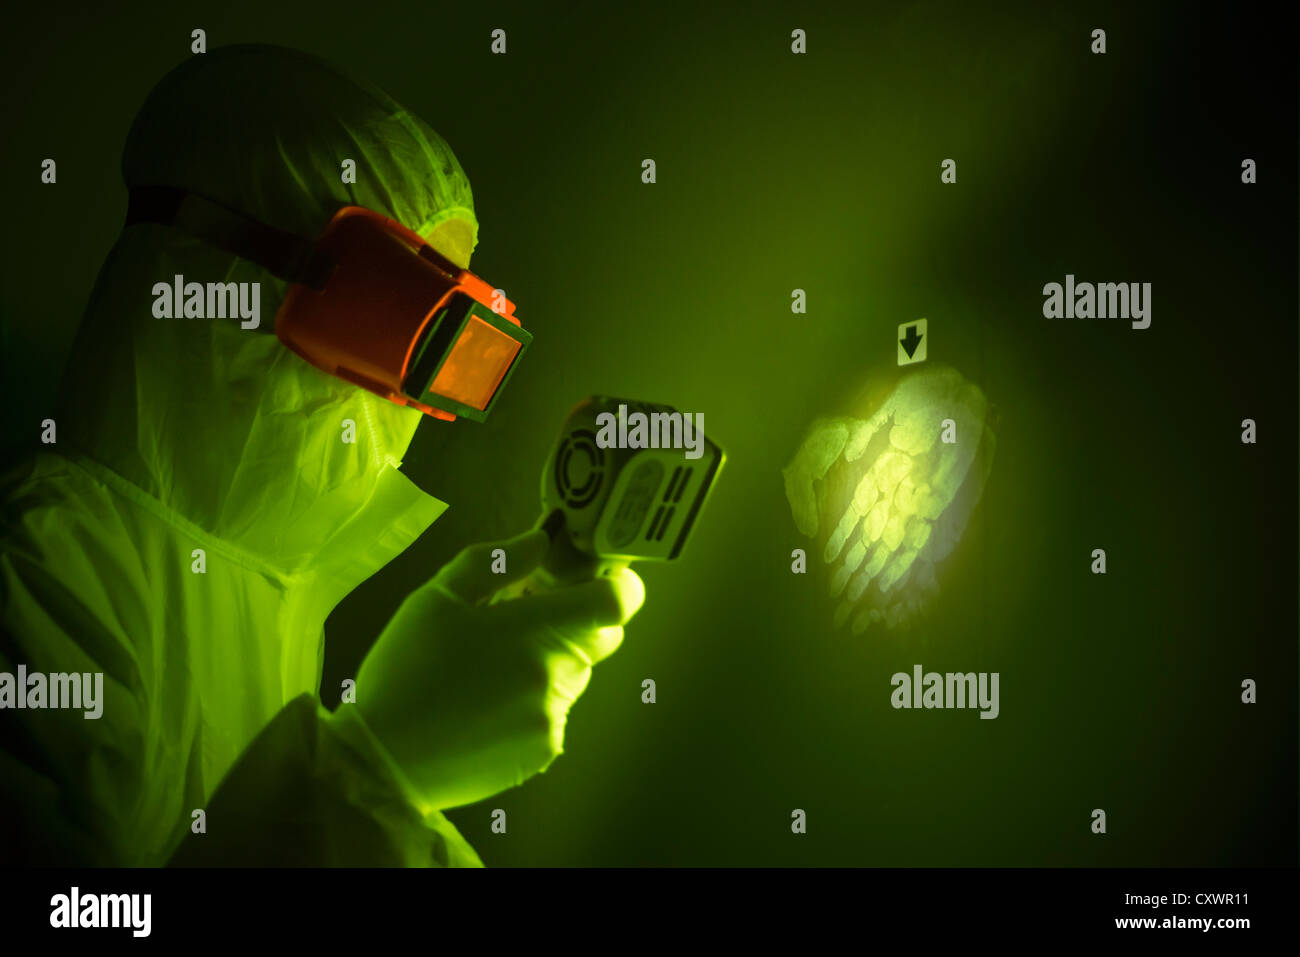 Forensic scientist with handprint - Stock Image